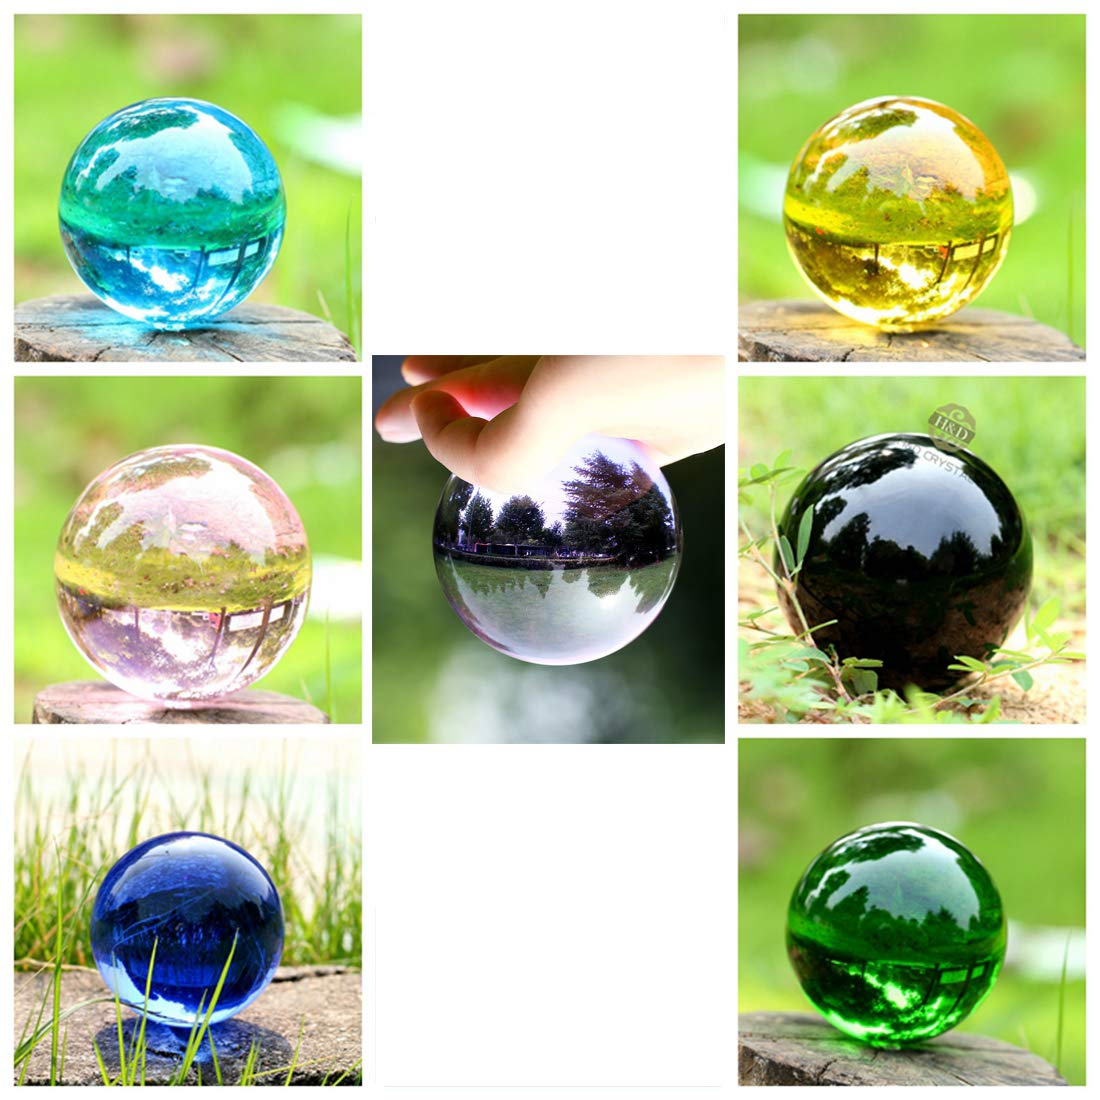 H&D Glass Ball for Photography Decoration, 50mm 7Pcs Crystal Sphere Ball with Stand,Magic Crystal Healing Ball